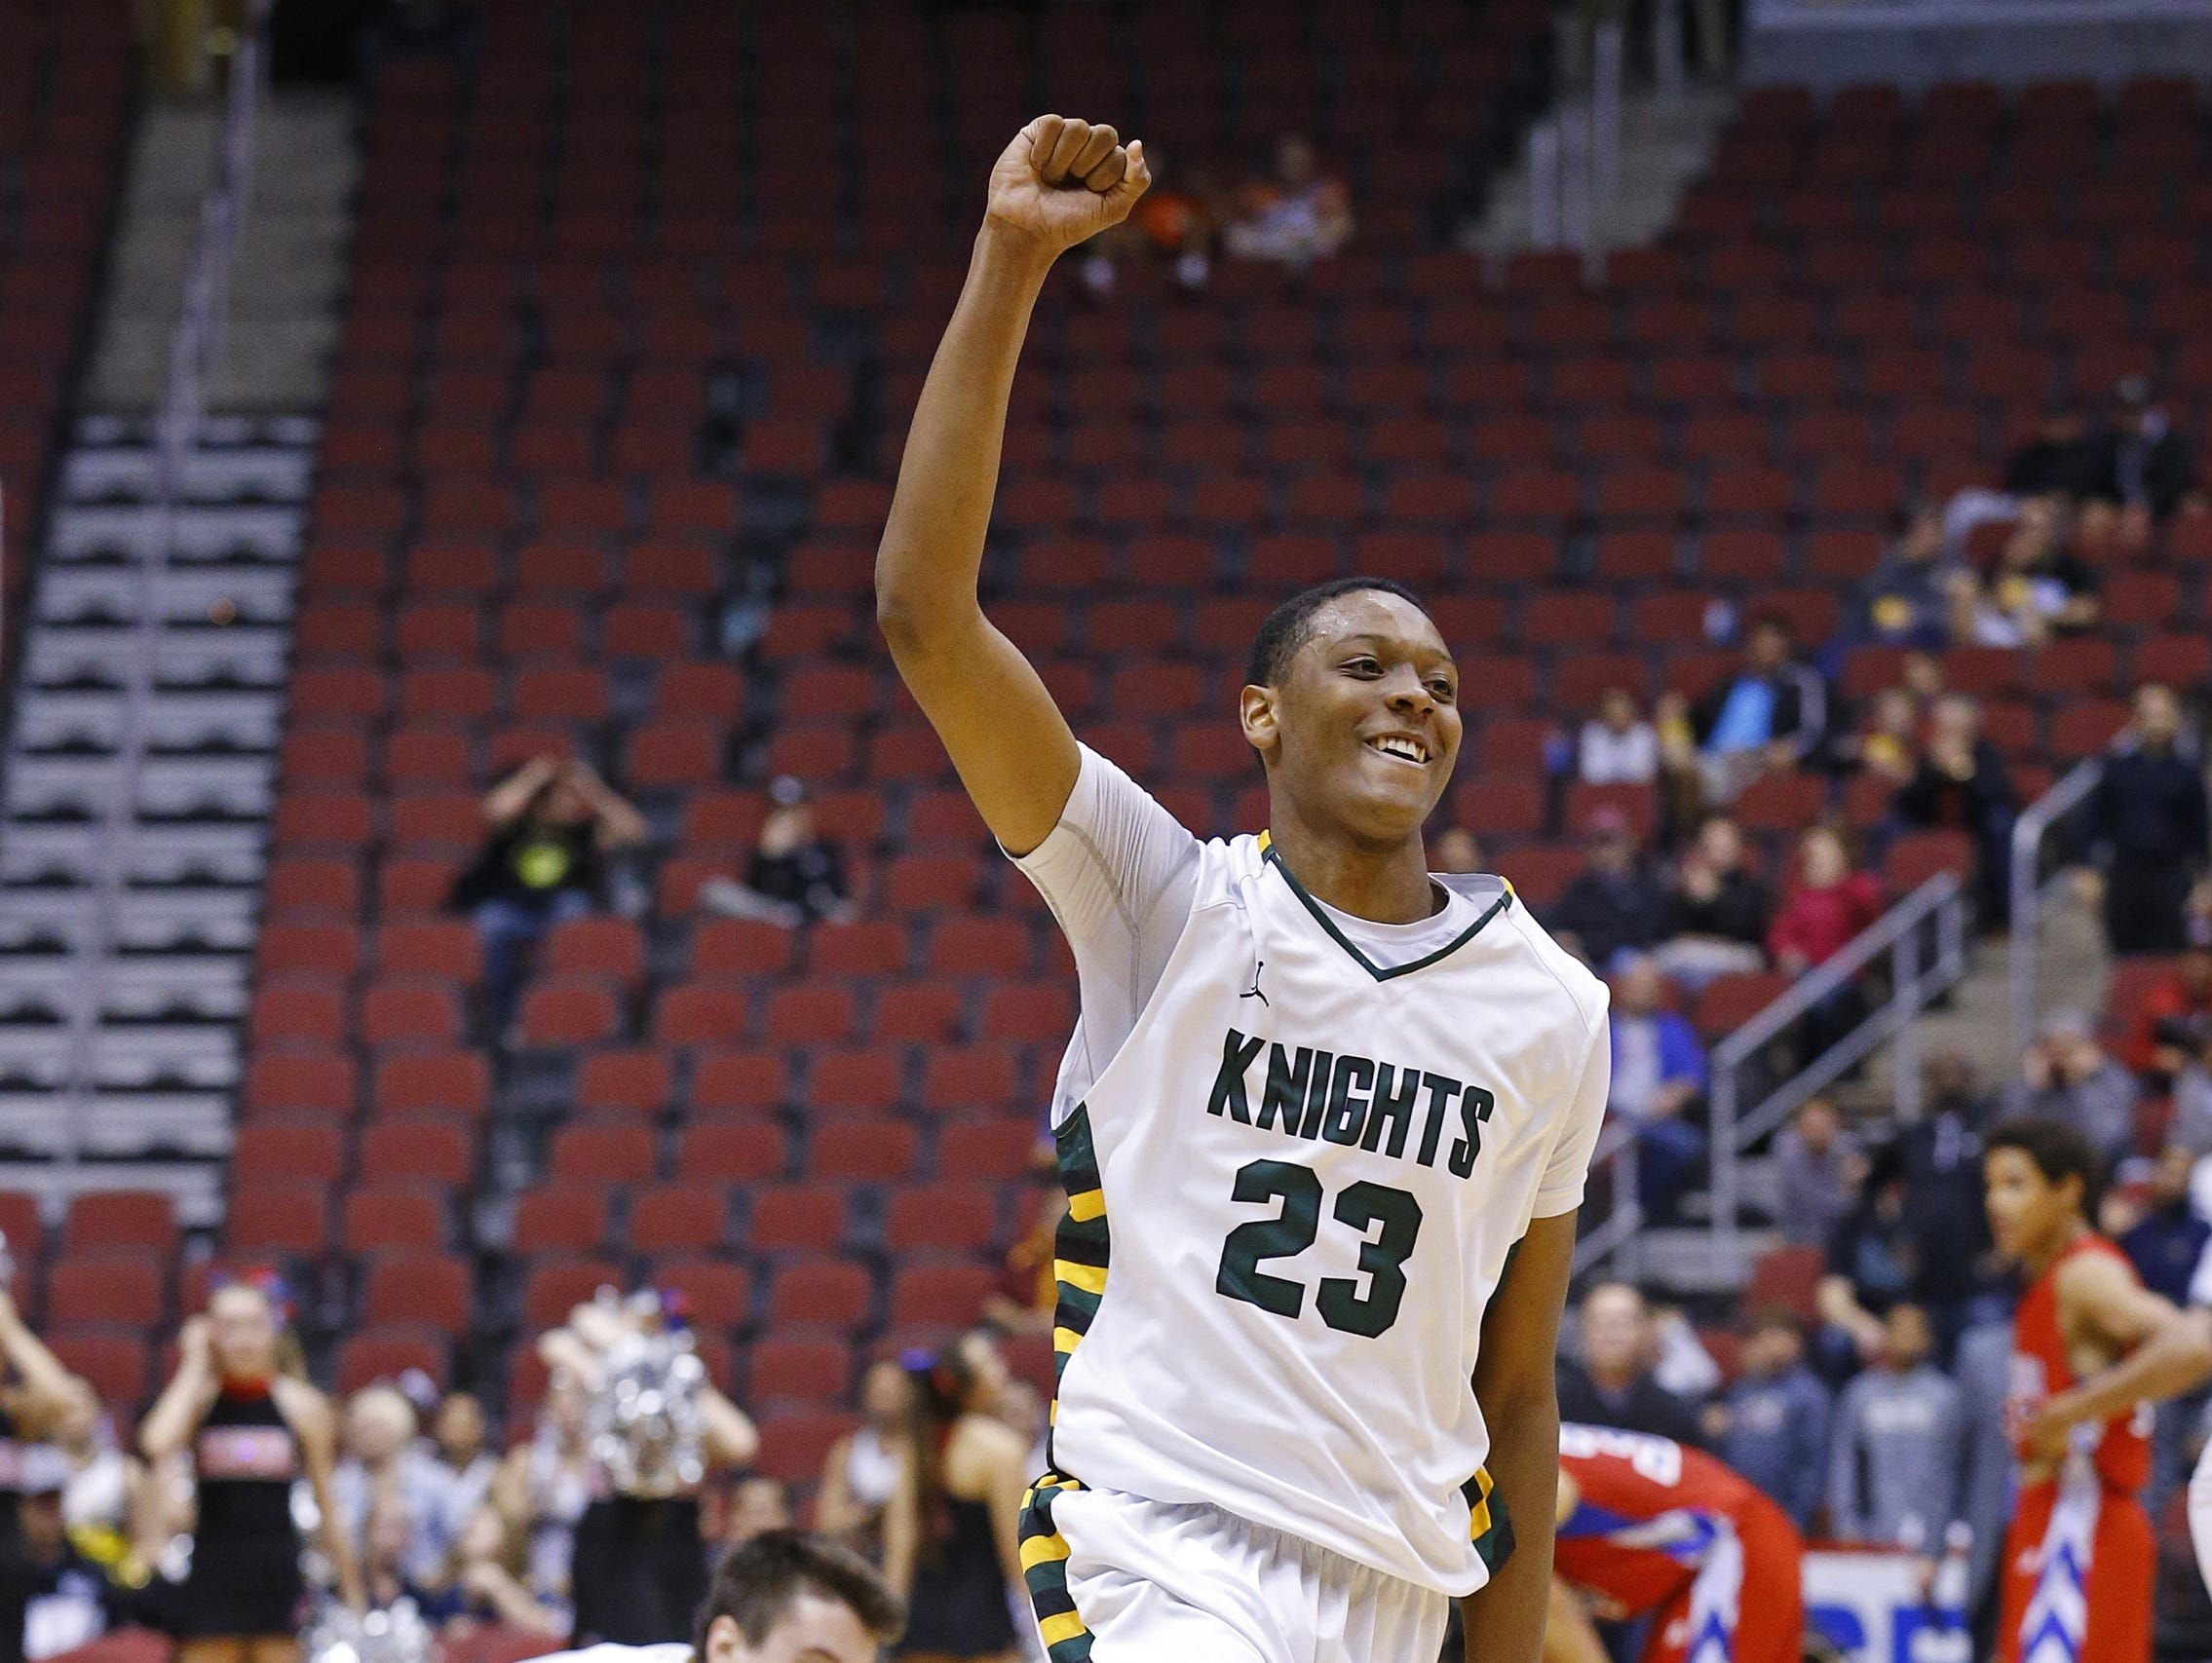 Gilbert Christian's Cameron Satterwhite (23) celebrates their win over Arcadia in their Division II boys basketball championship game Monday, March 2, 2015 in Glendale.